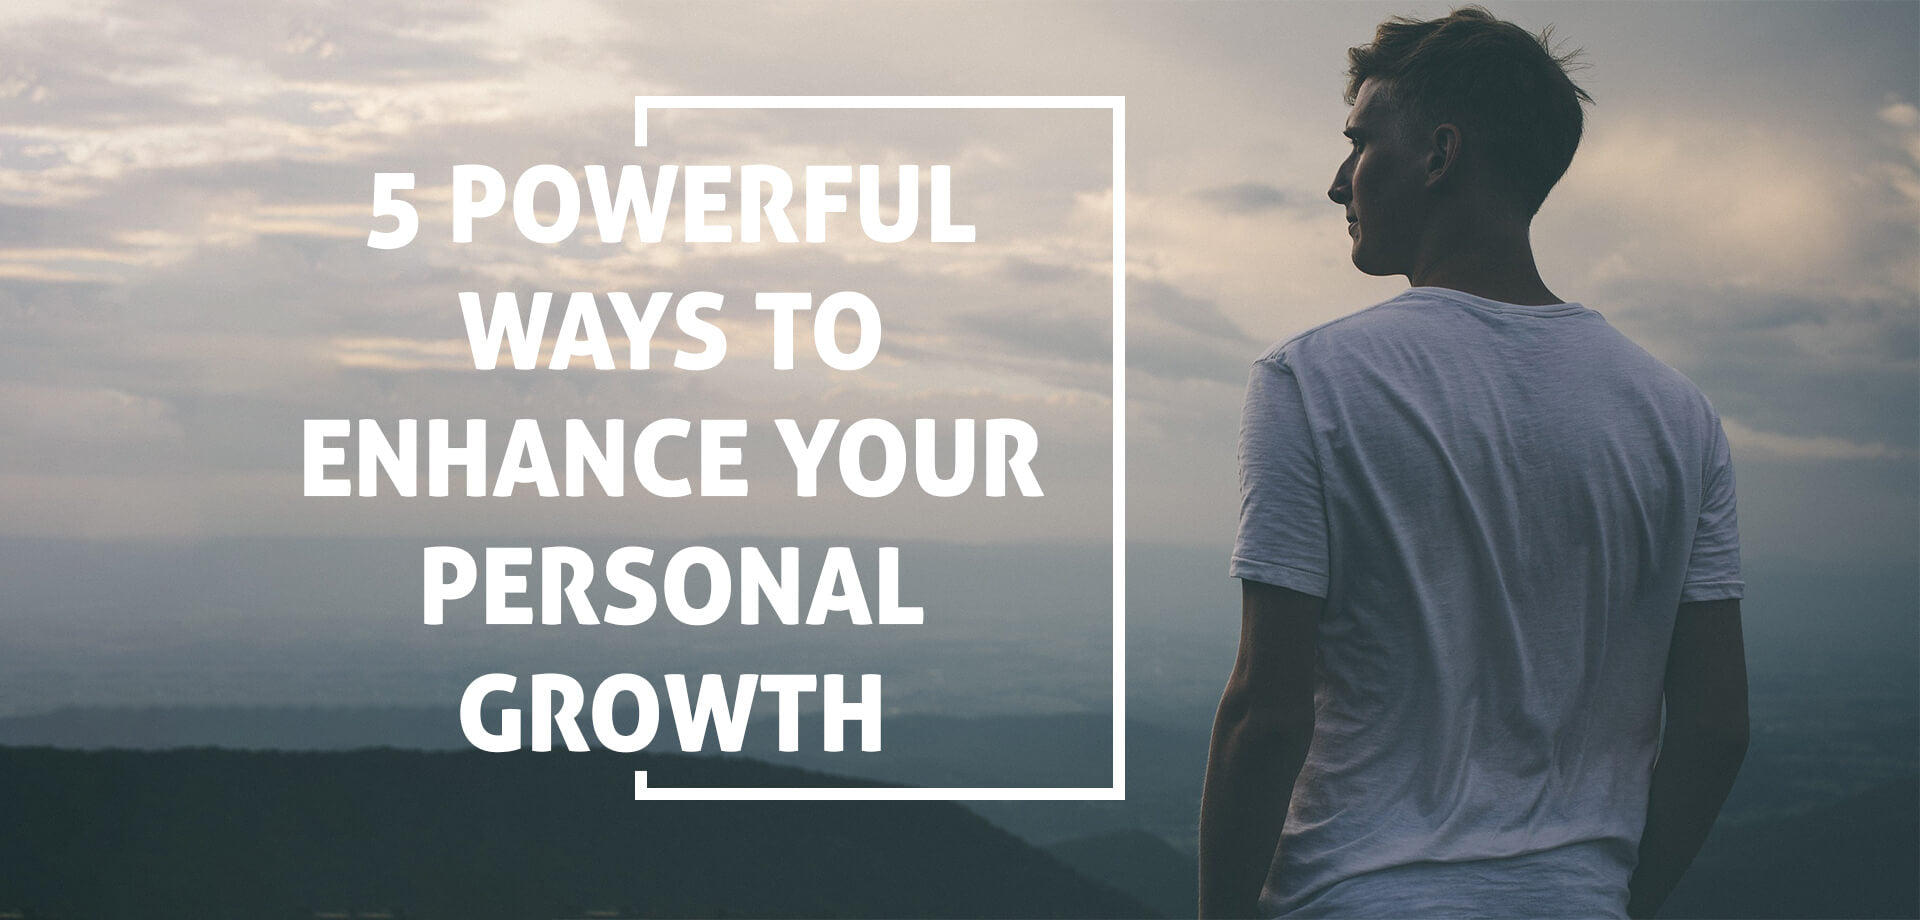 5 Powerful Ways to Enhance Your Personal Growth